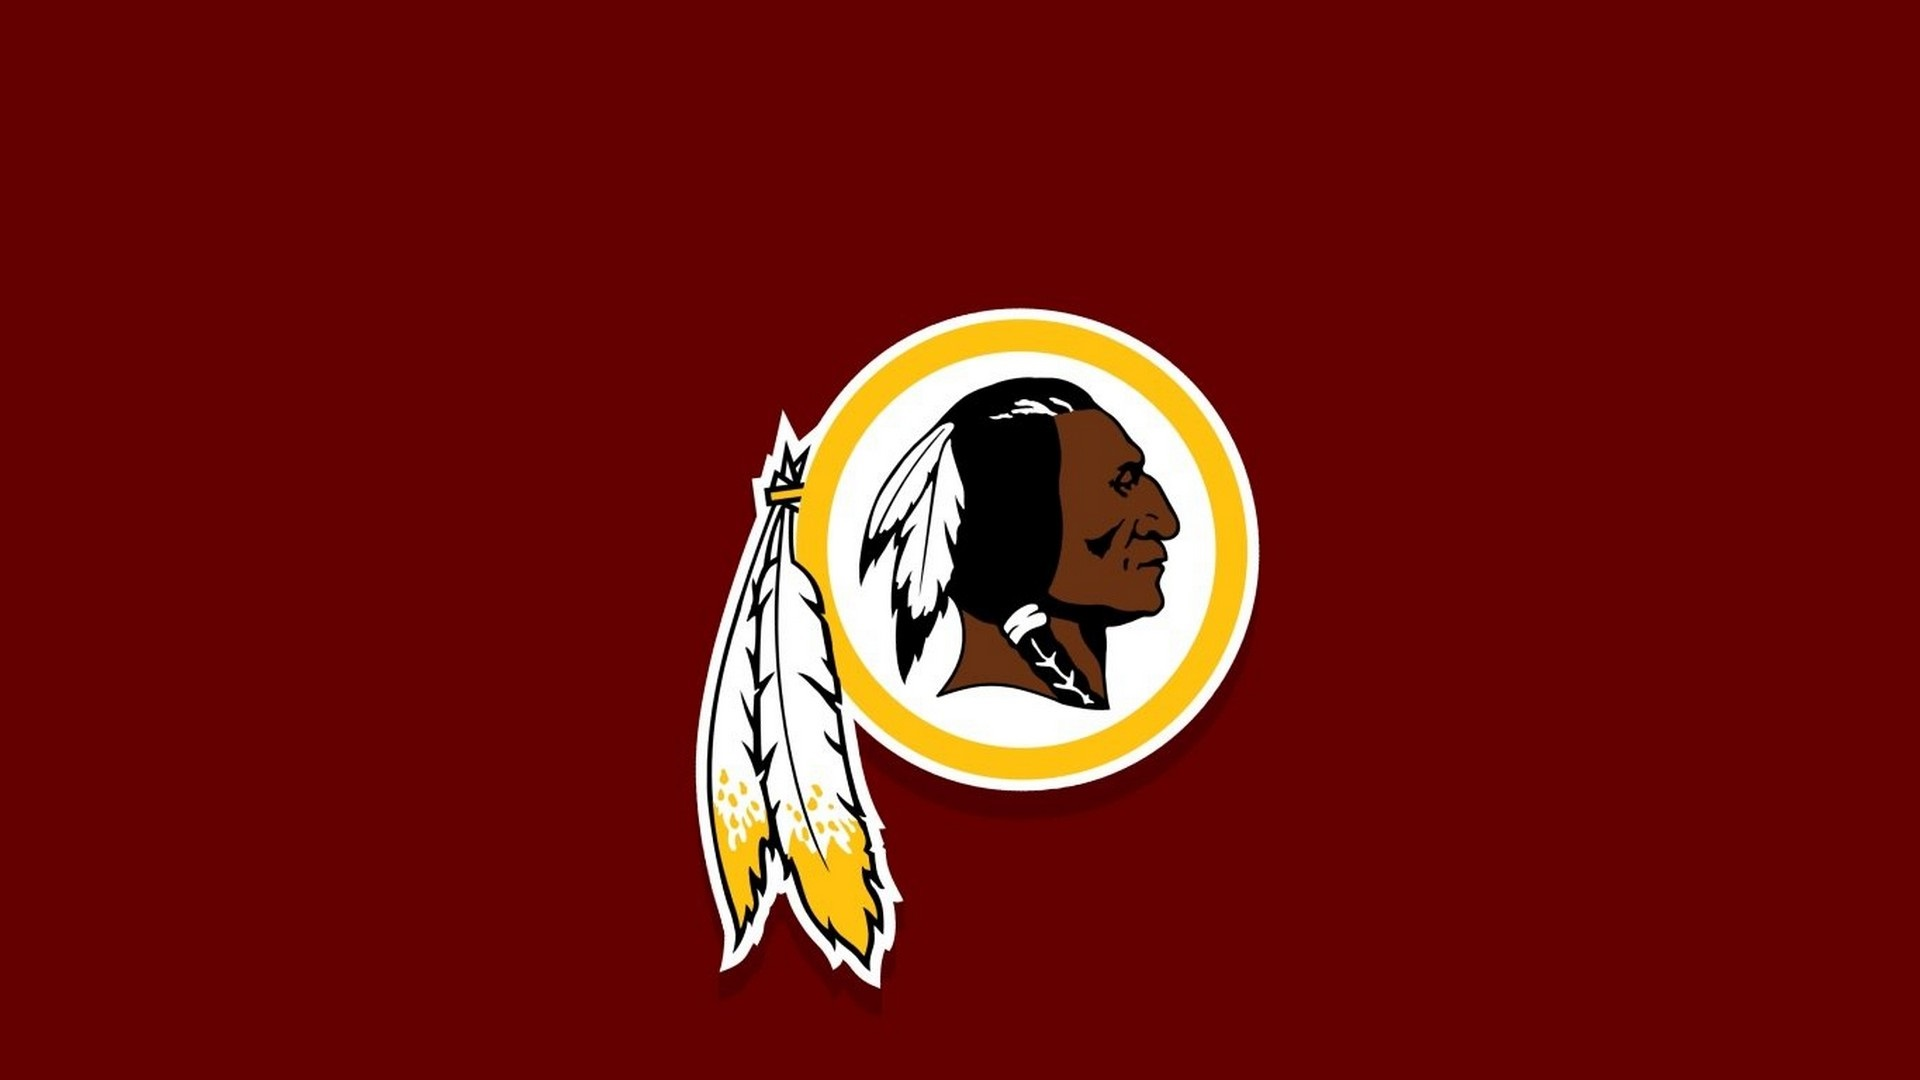 Washington Redskins For PC Wallpaper 2020 NFL Football Wallpapers 1920x1080